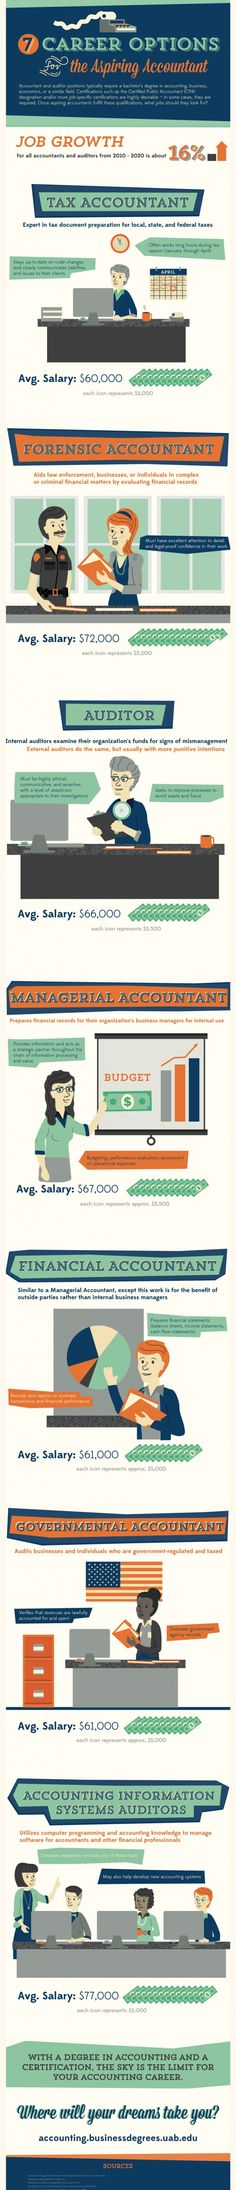 #Accounting 7 Cool Career Paths in Accounting